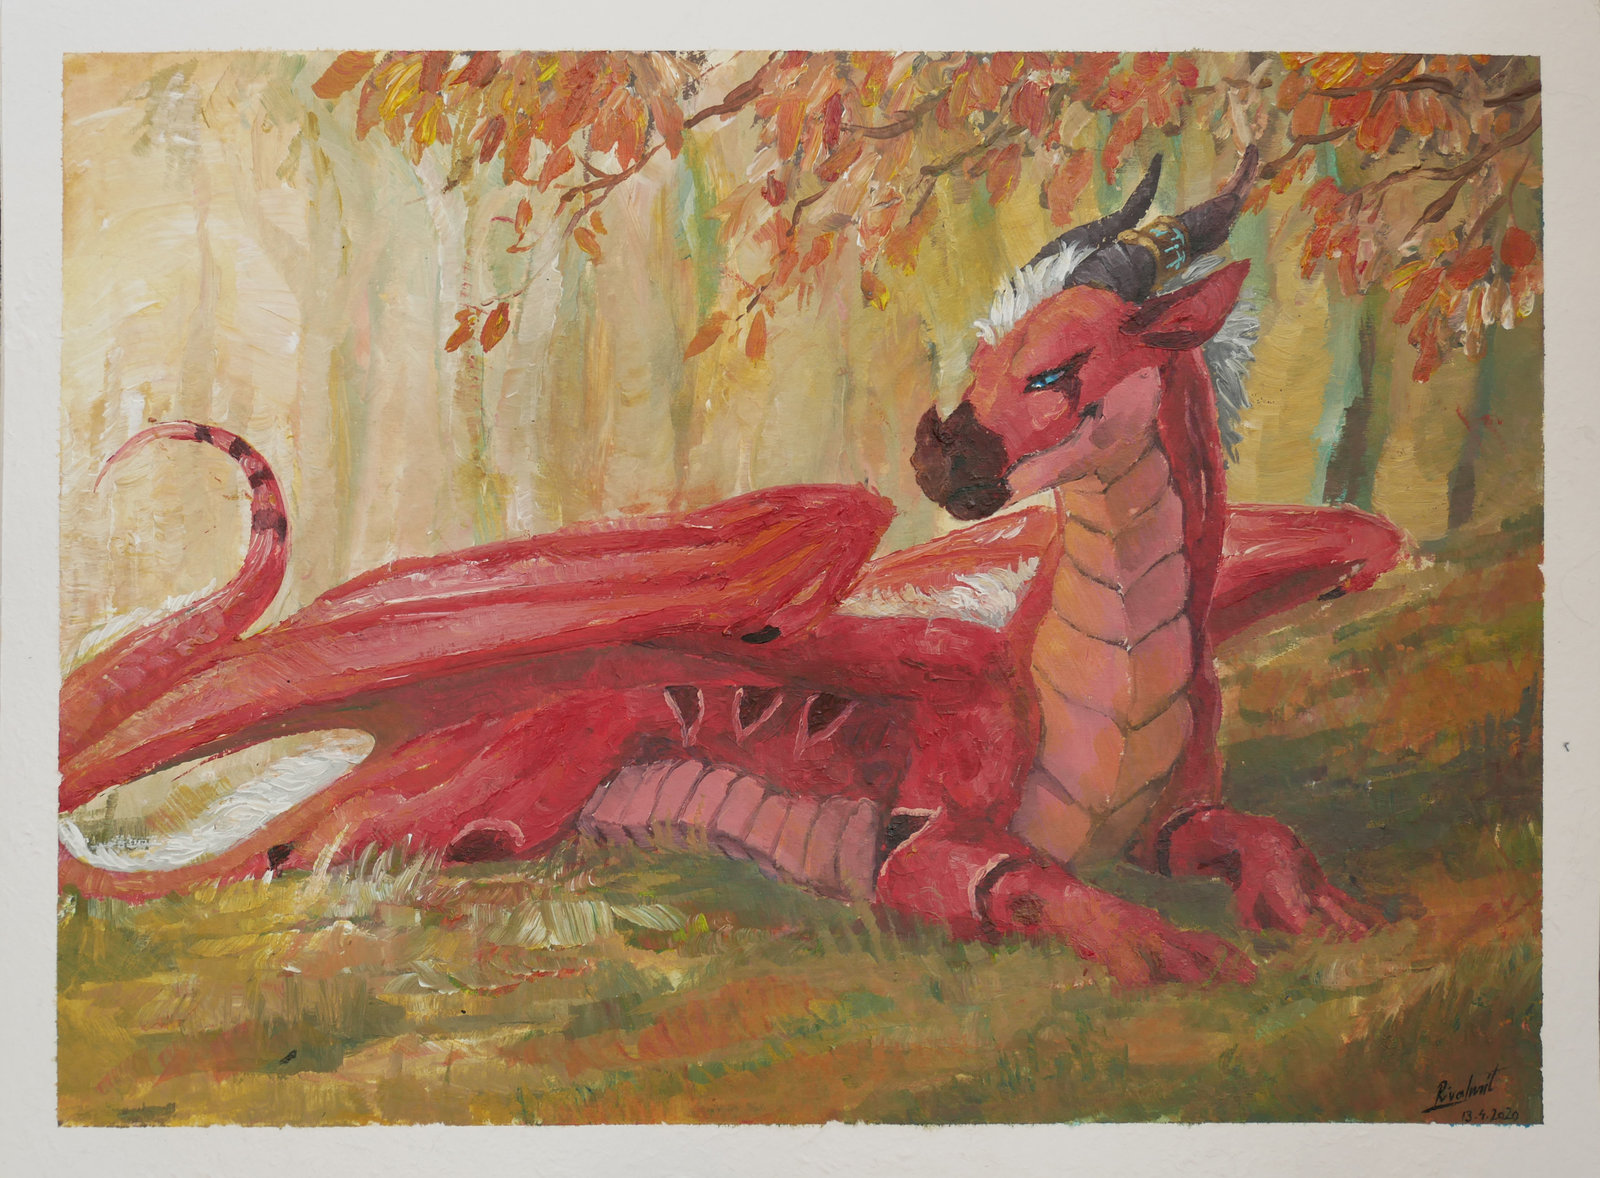 dragon forest painting speedpainting acrylic commission speedpainting commission Solus